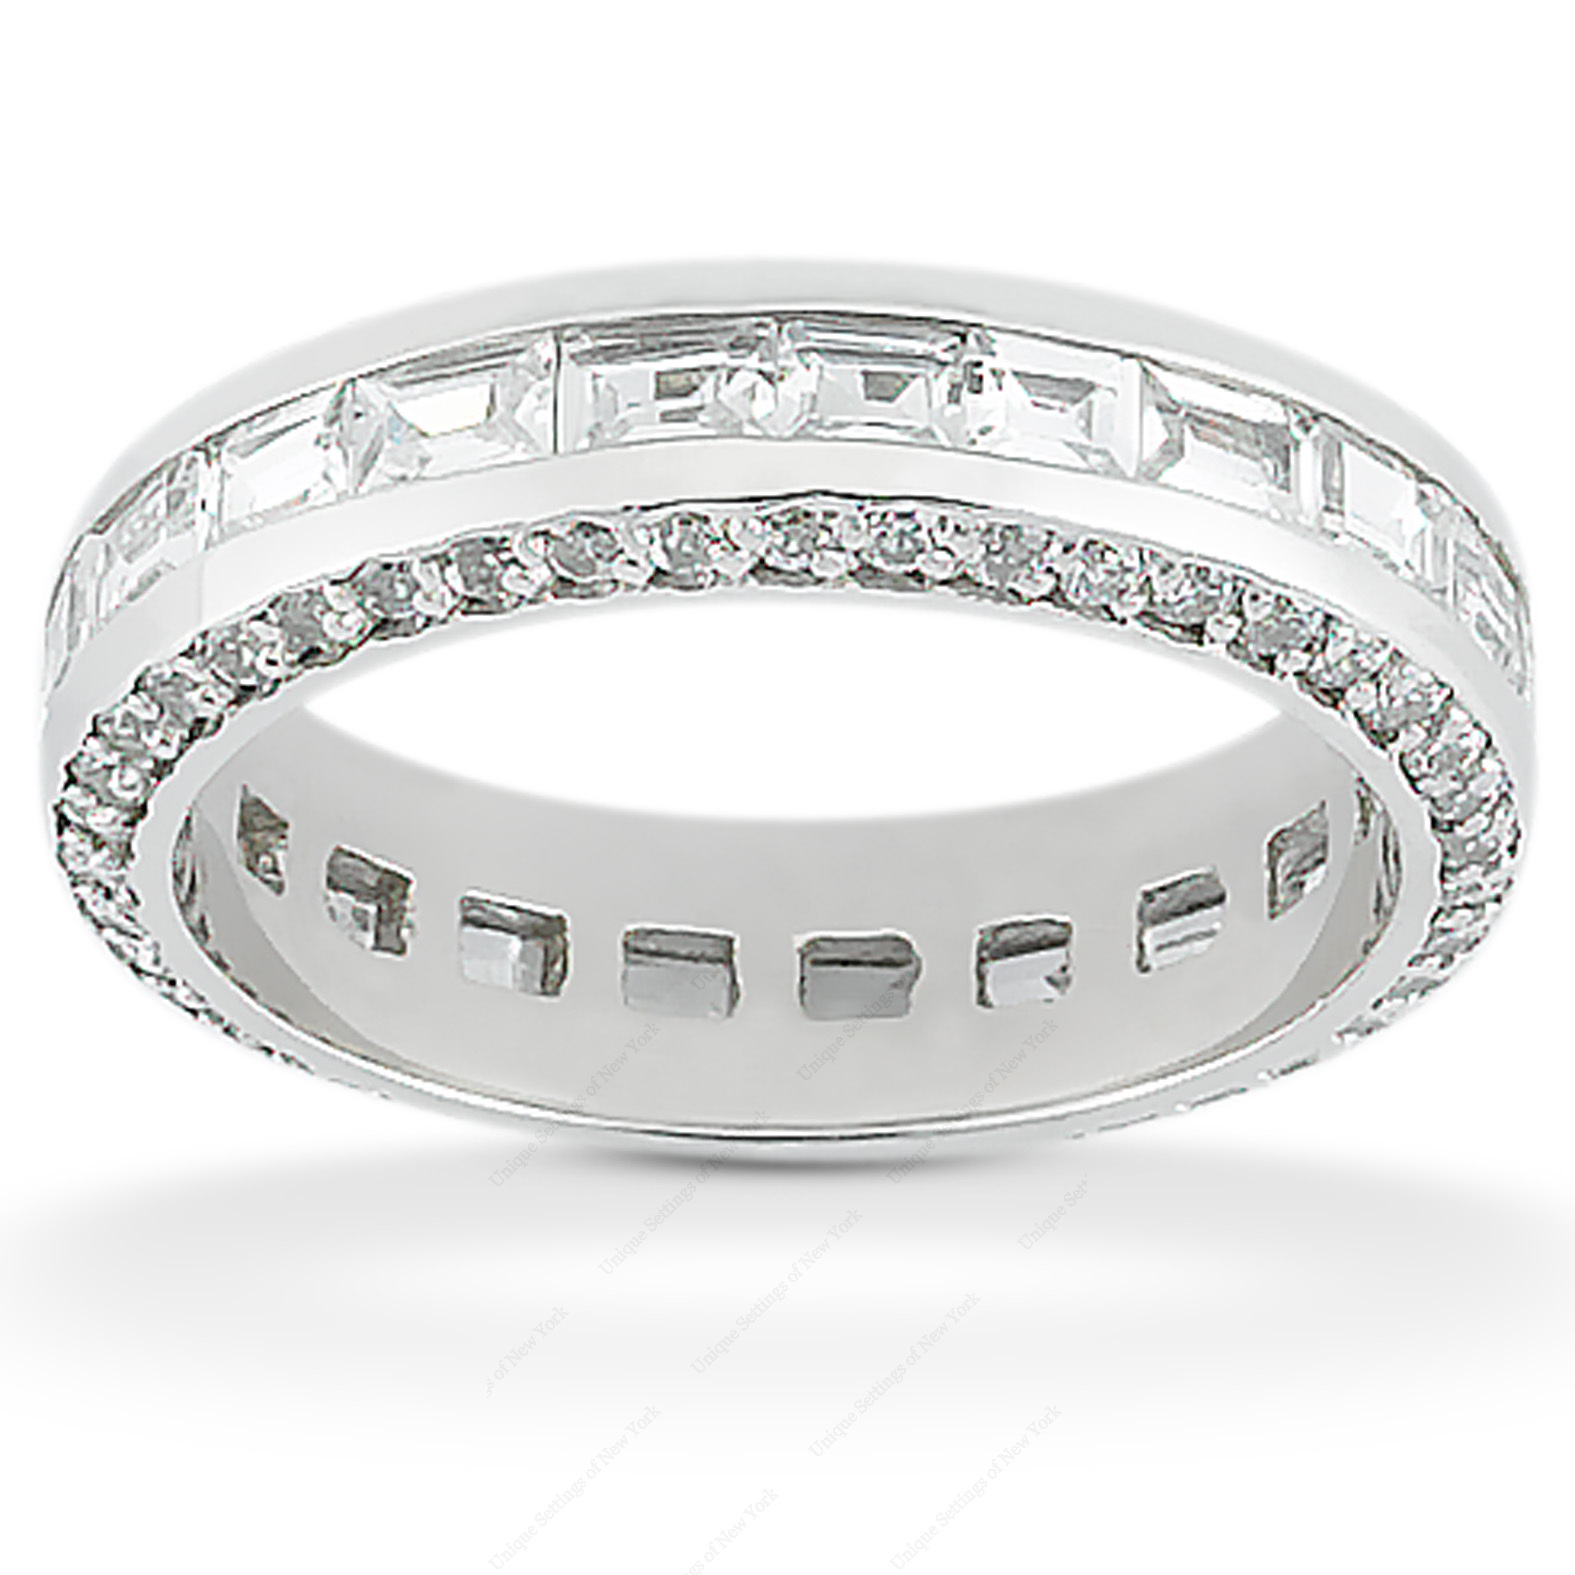 PLAT Combinations 2.41 CT. Eternity Wedding Bands